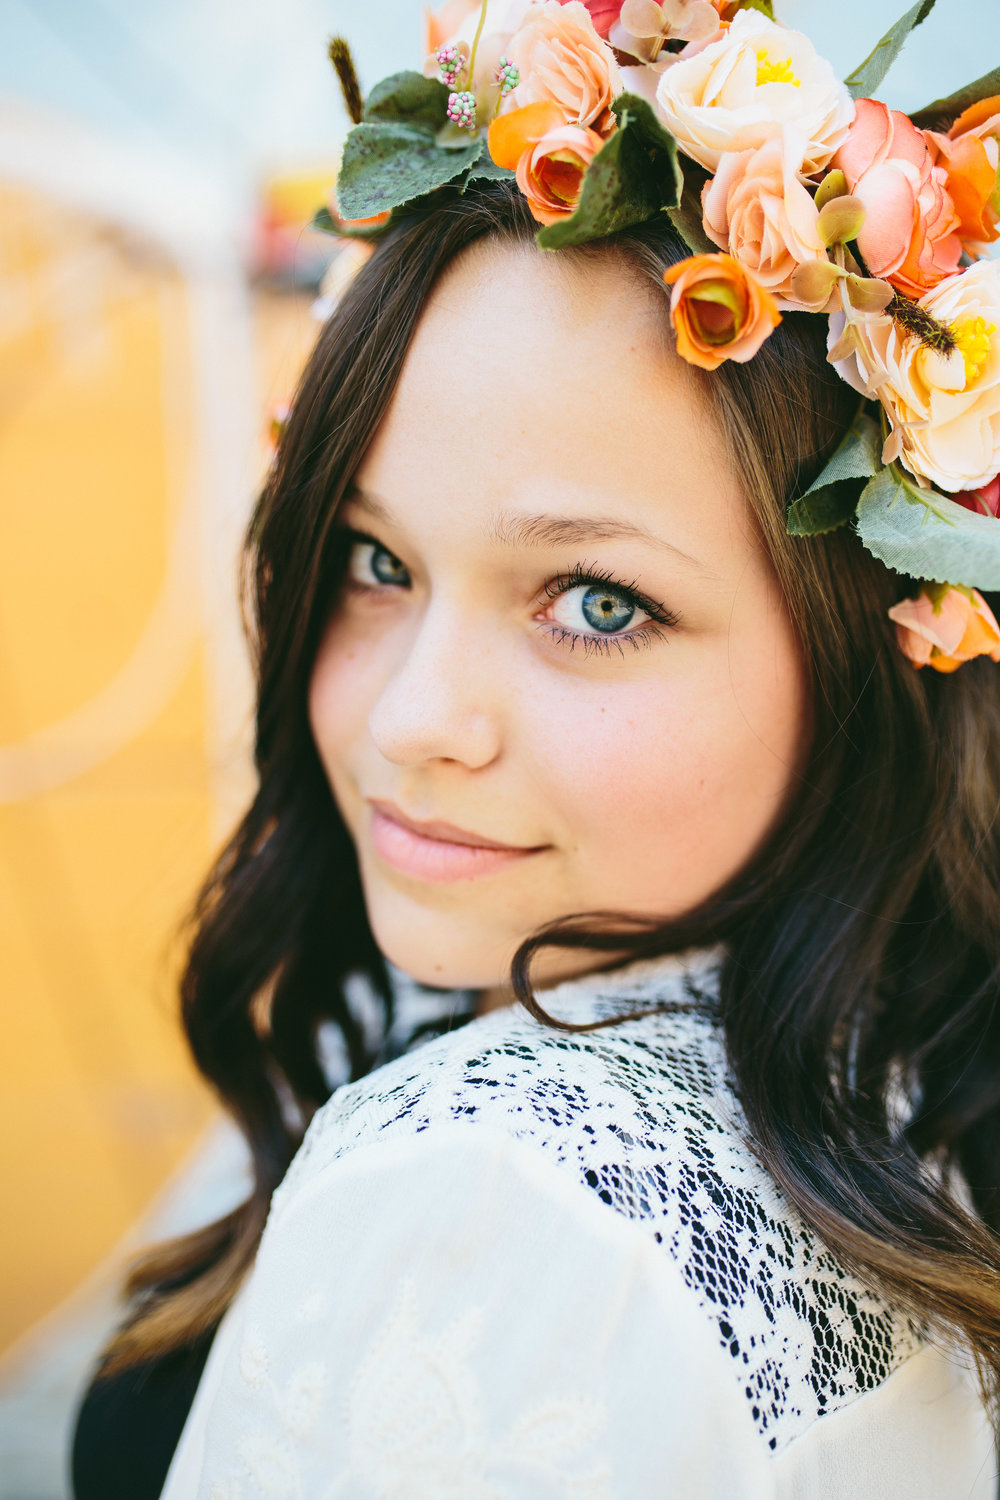 flower-crown-senior-portrait